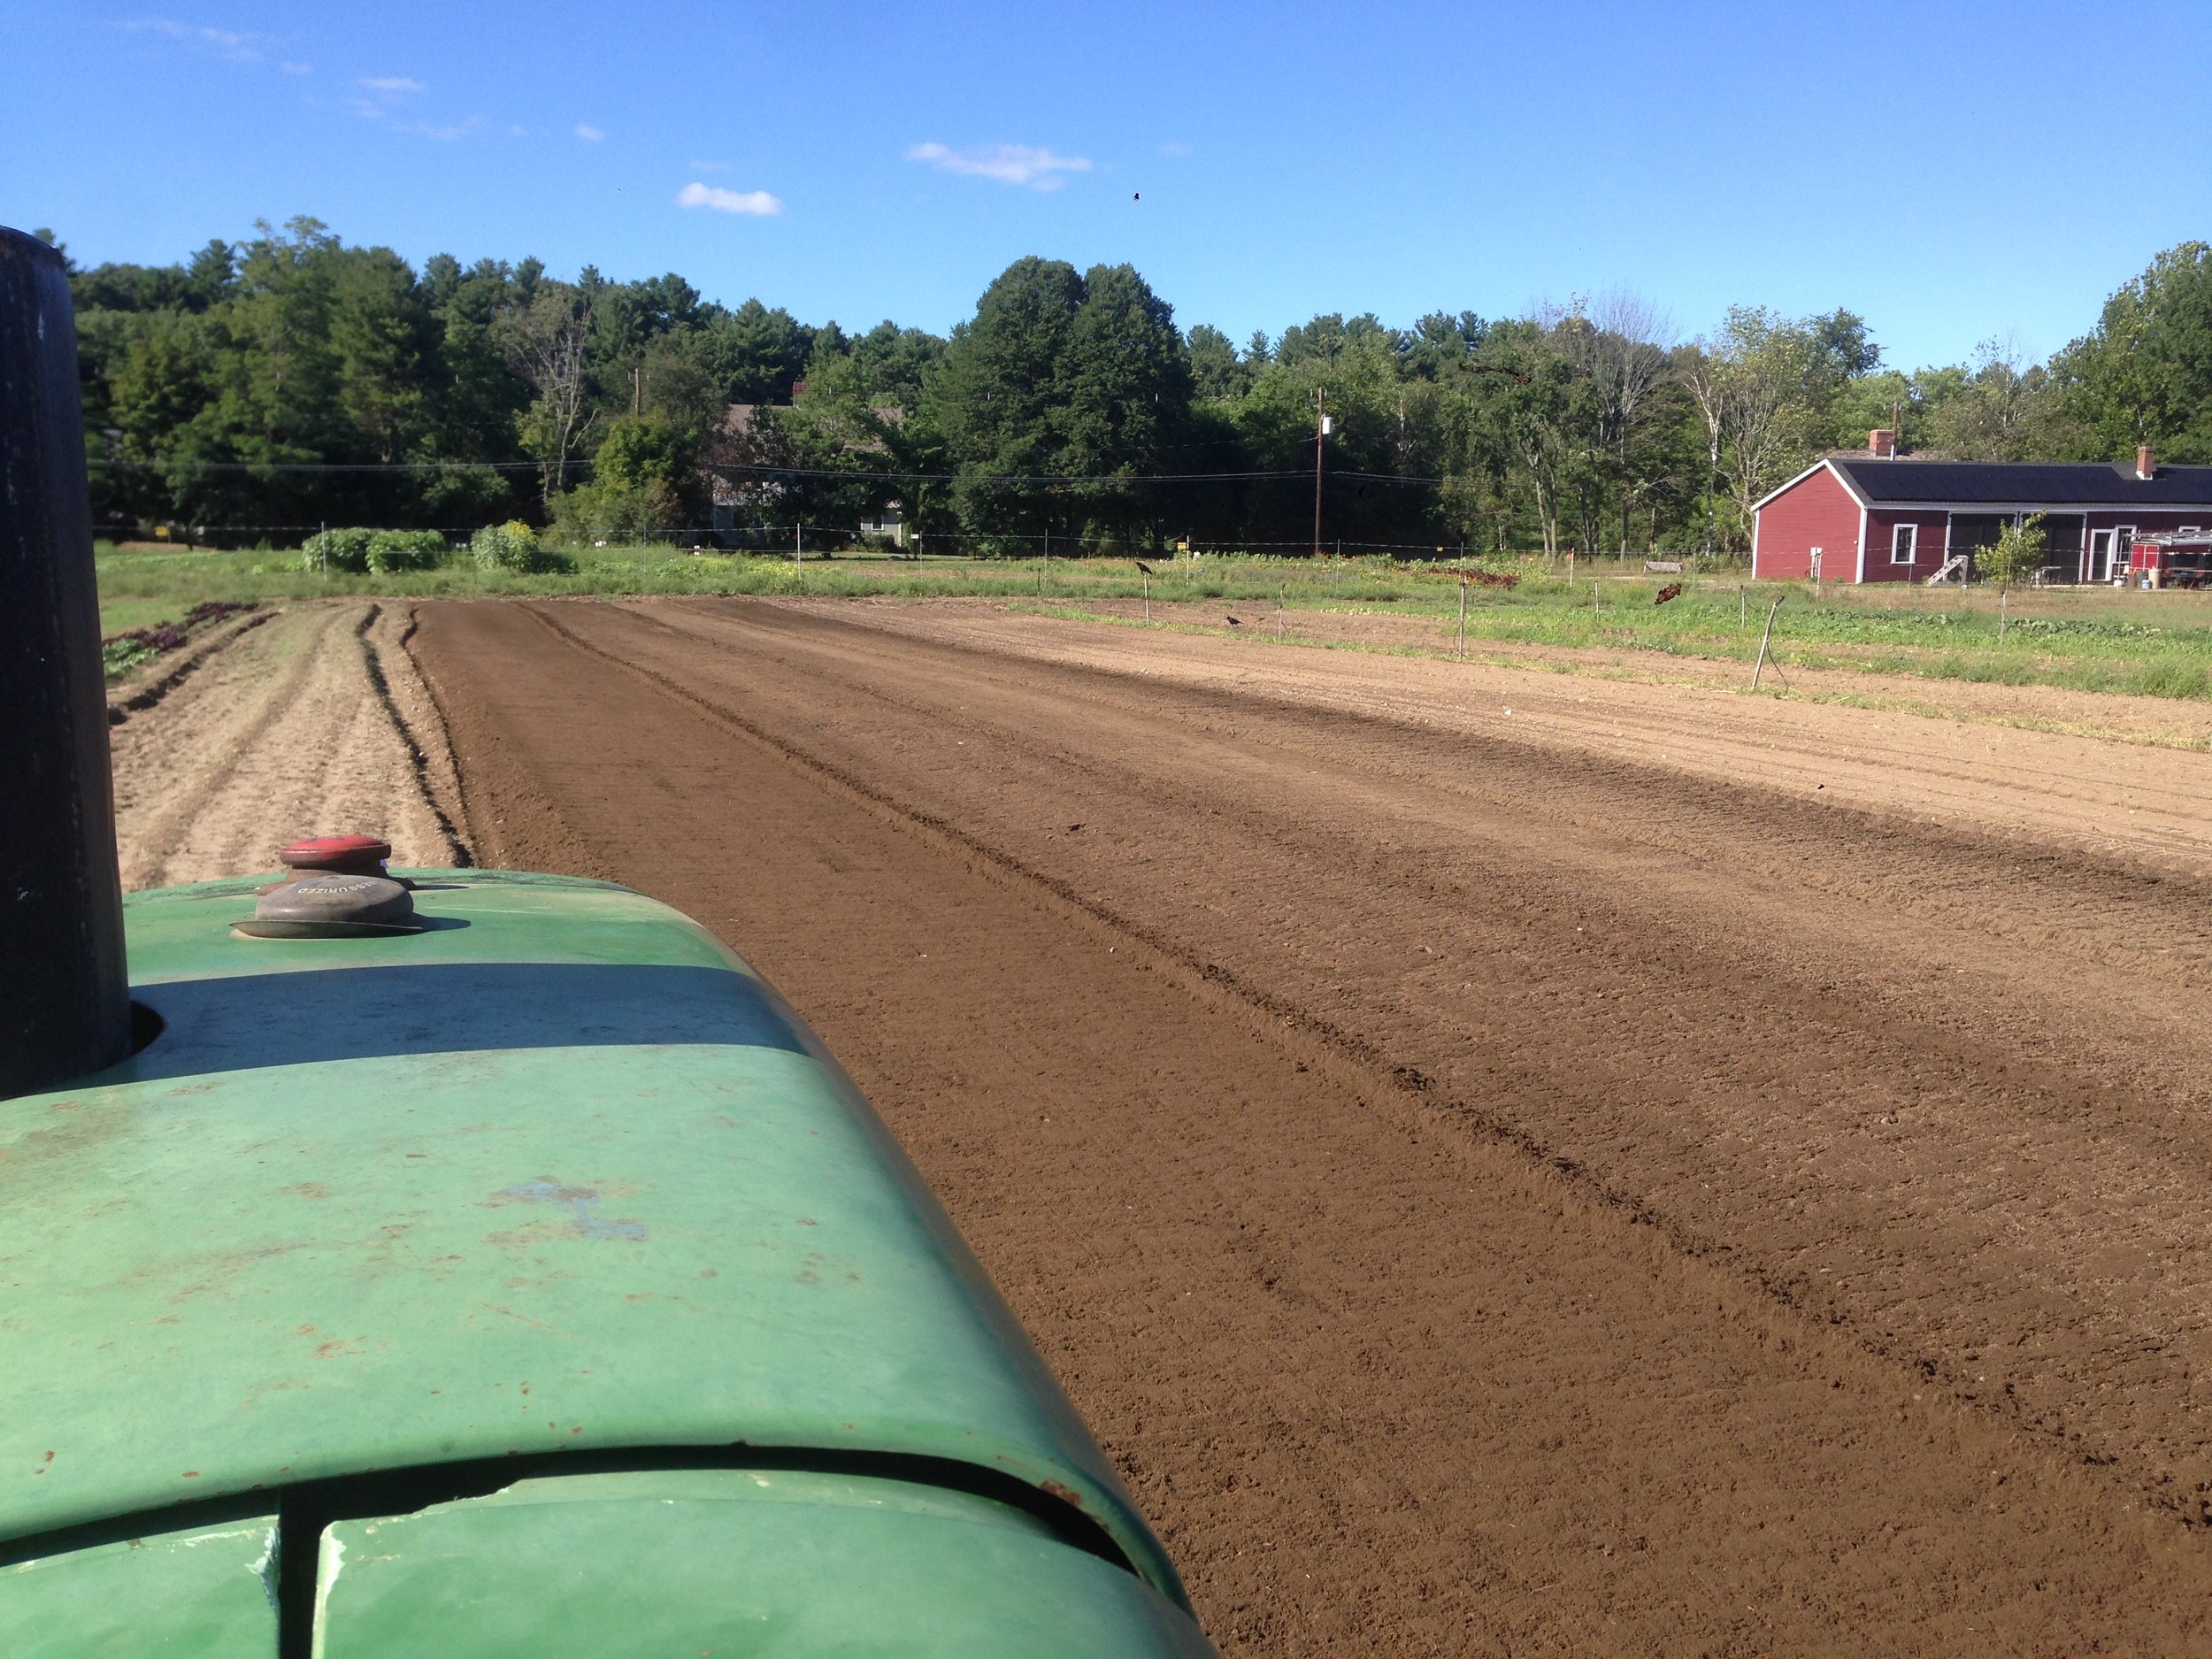 Making beds for seeding fall greens and planting spinach this week